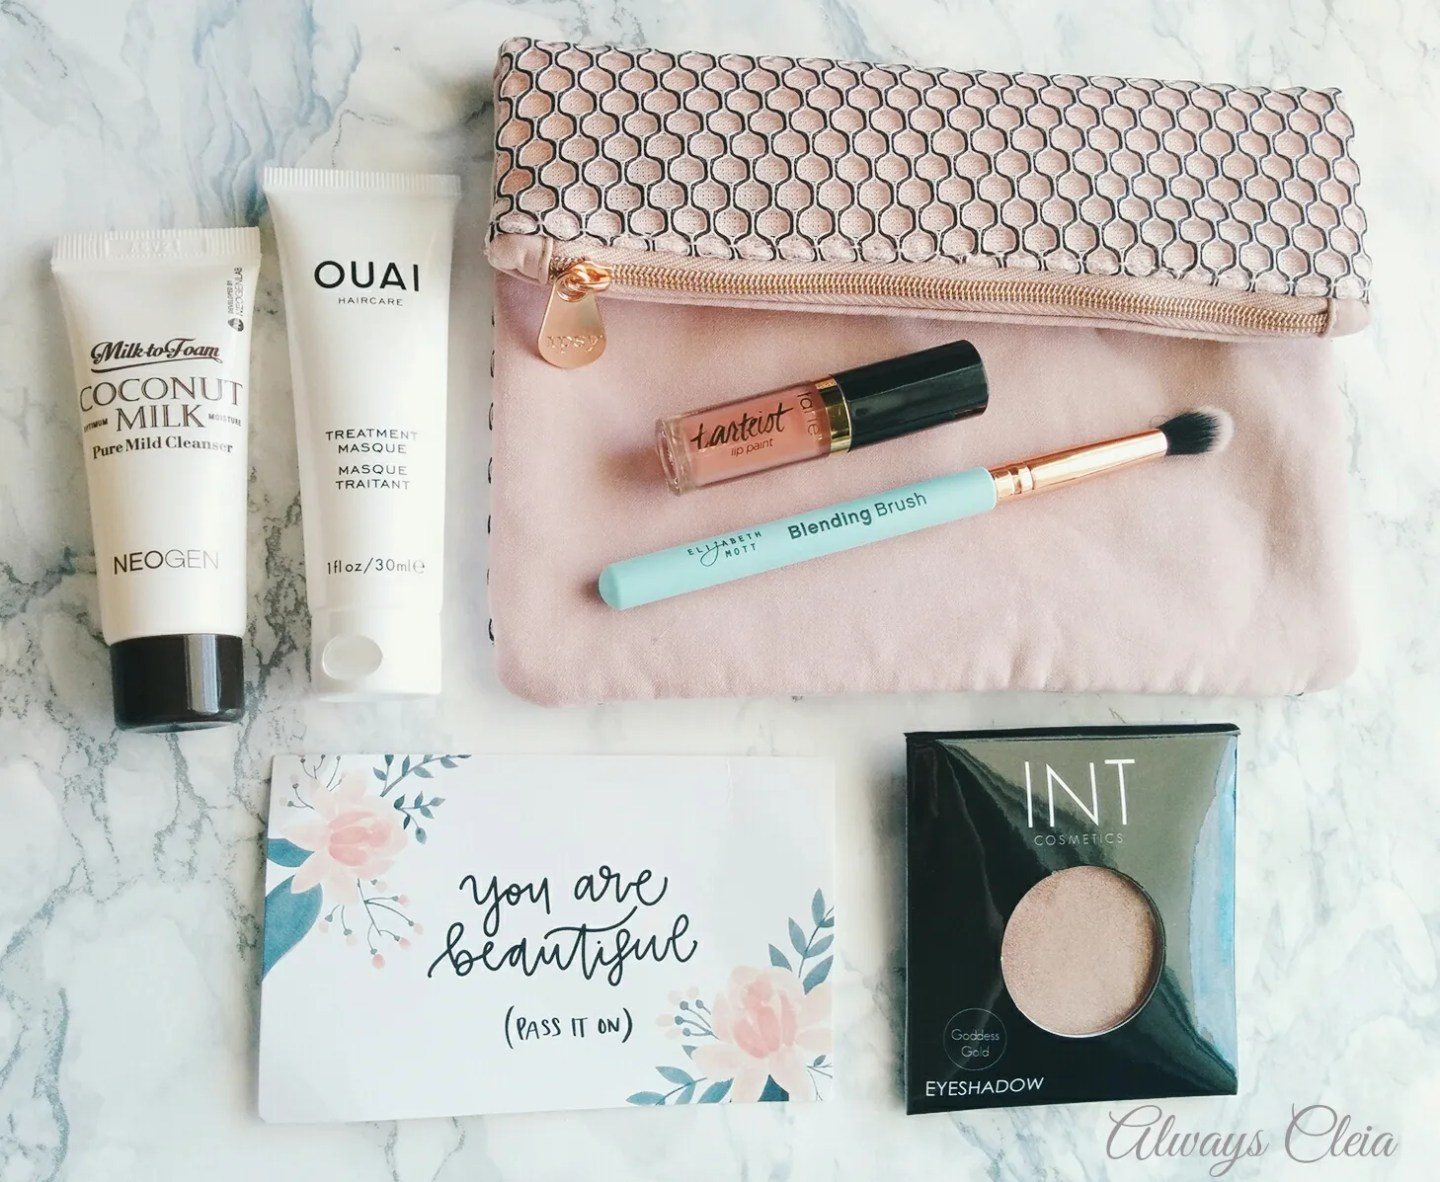 2017 March Ipsy Glam Bag Review